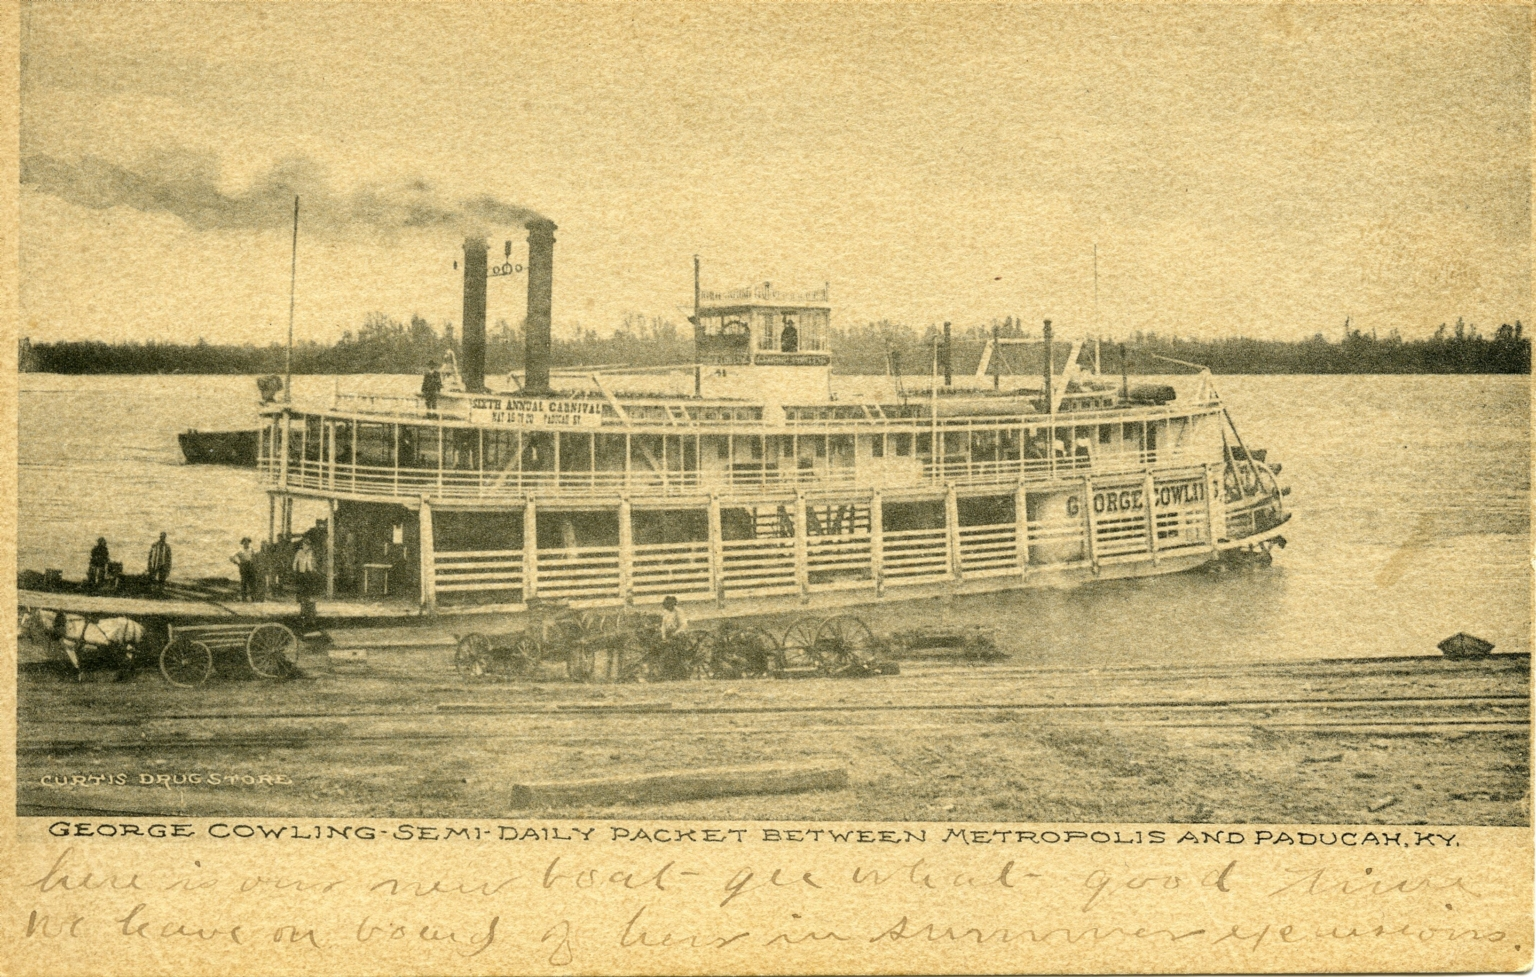 George Cowling packet boat on Ohio River at Paducah (KY)